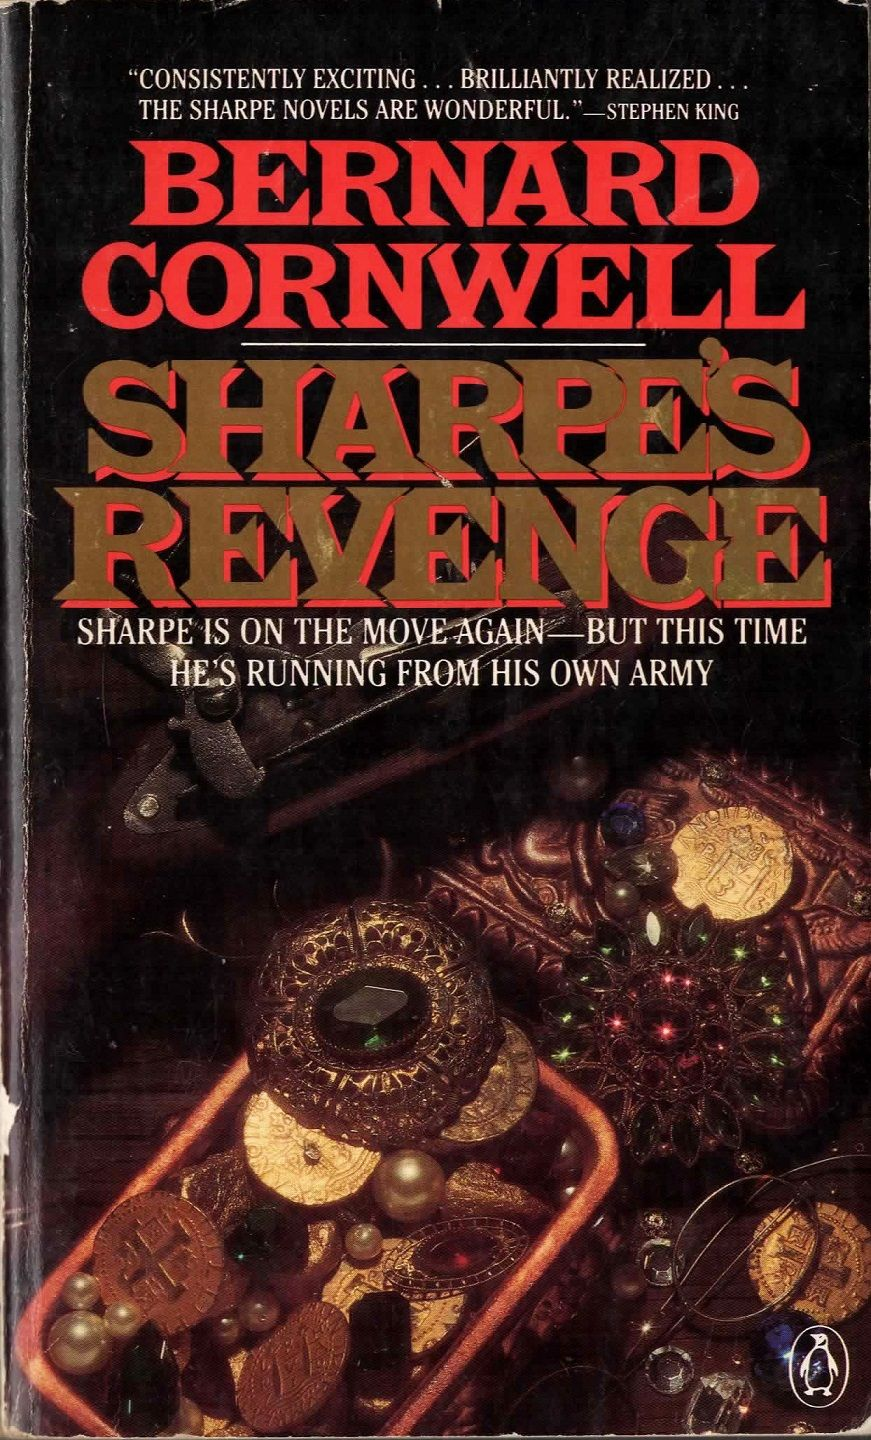 Sharpe S Revenge By Bernard Cornwell Richard Sharpe And The Peace Of 1814 Penguin Books 1990 Mass Market Pa Bernard Cornwell Penguin Books Favorite Authors